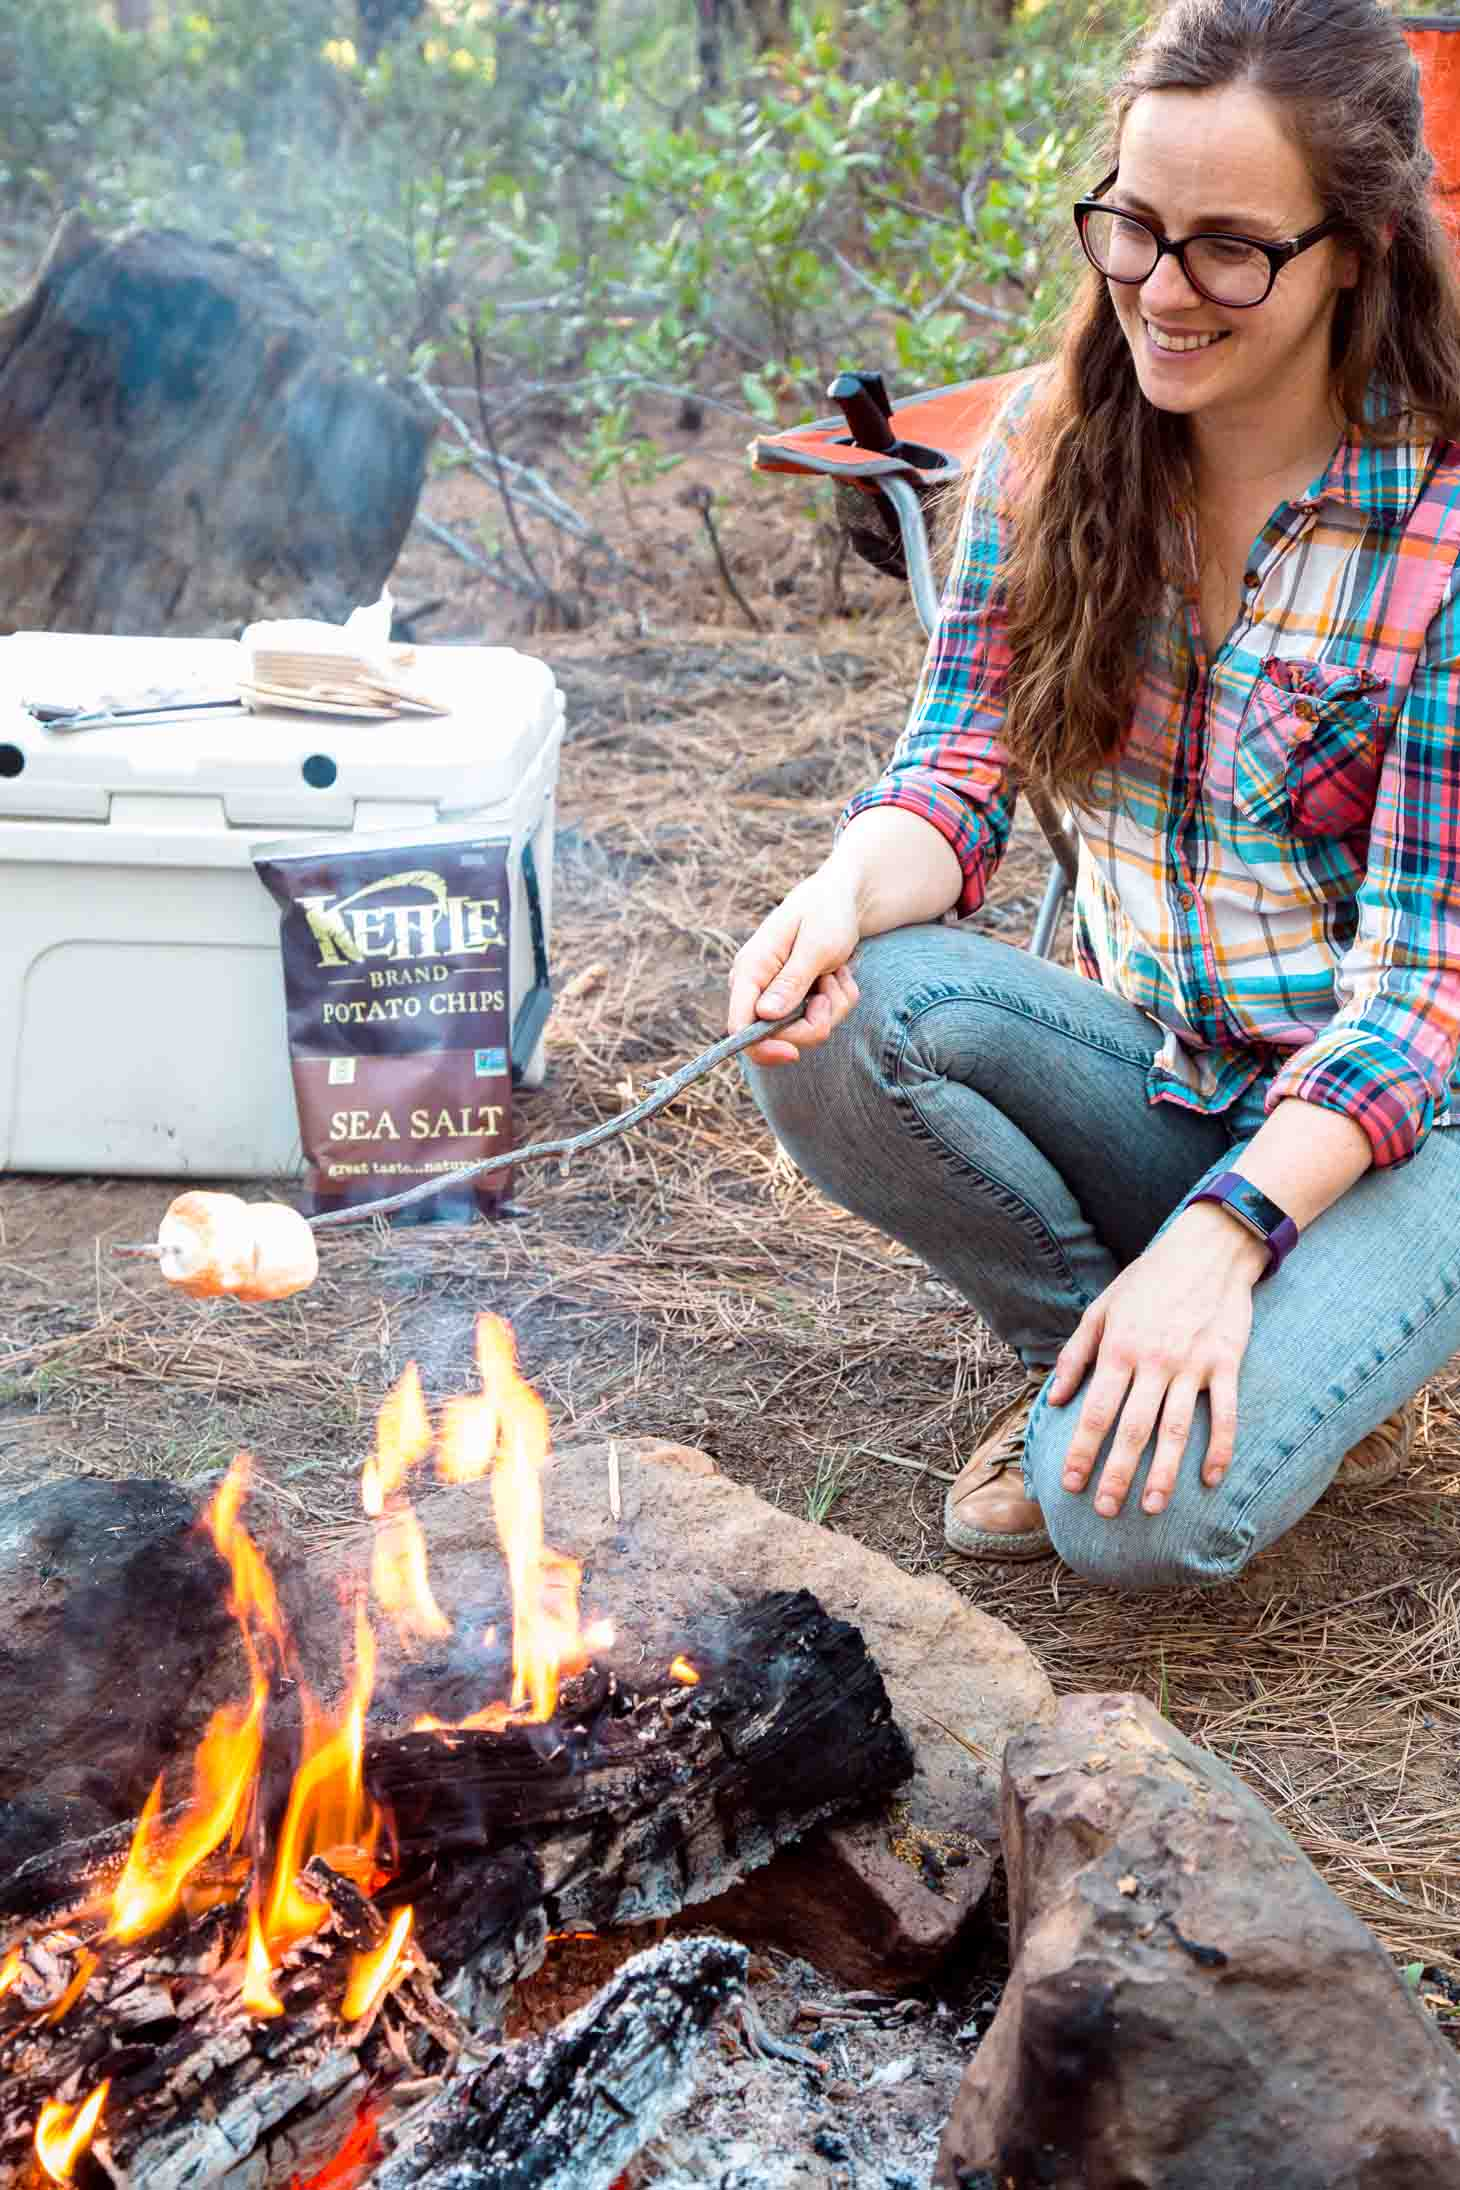 Woman roasting marshmallows over a campfire.